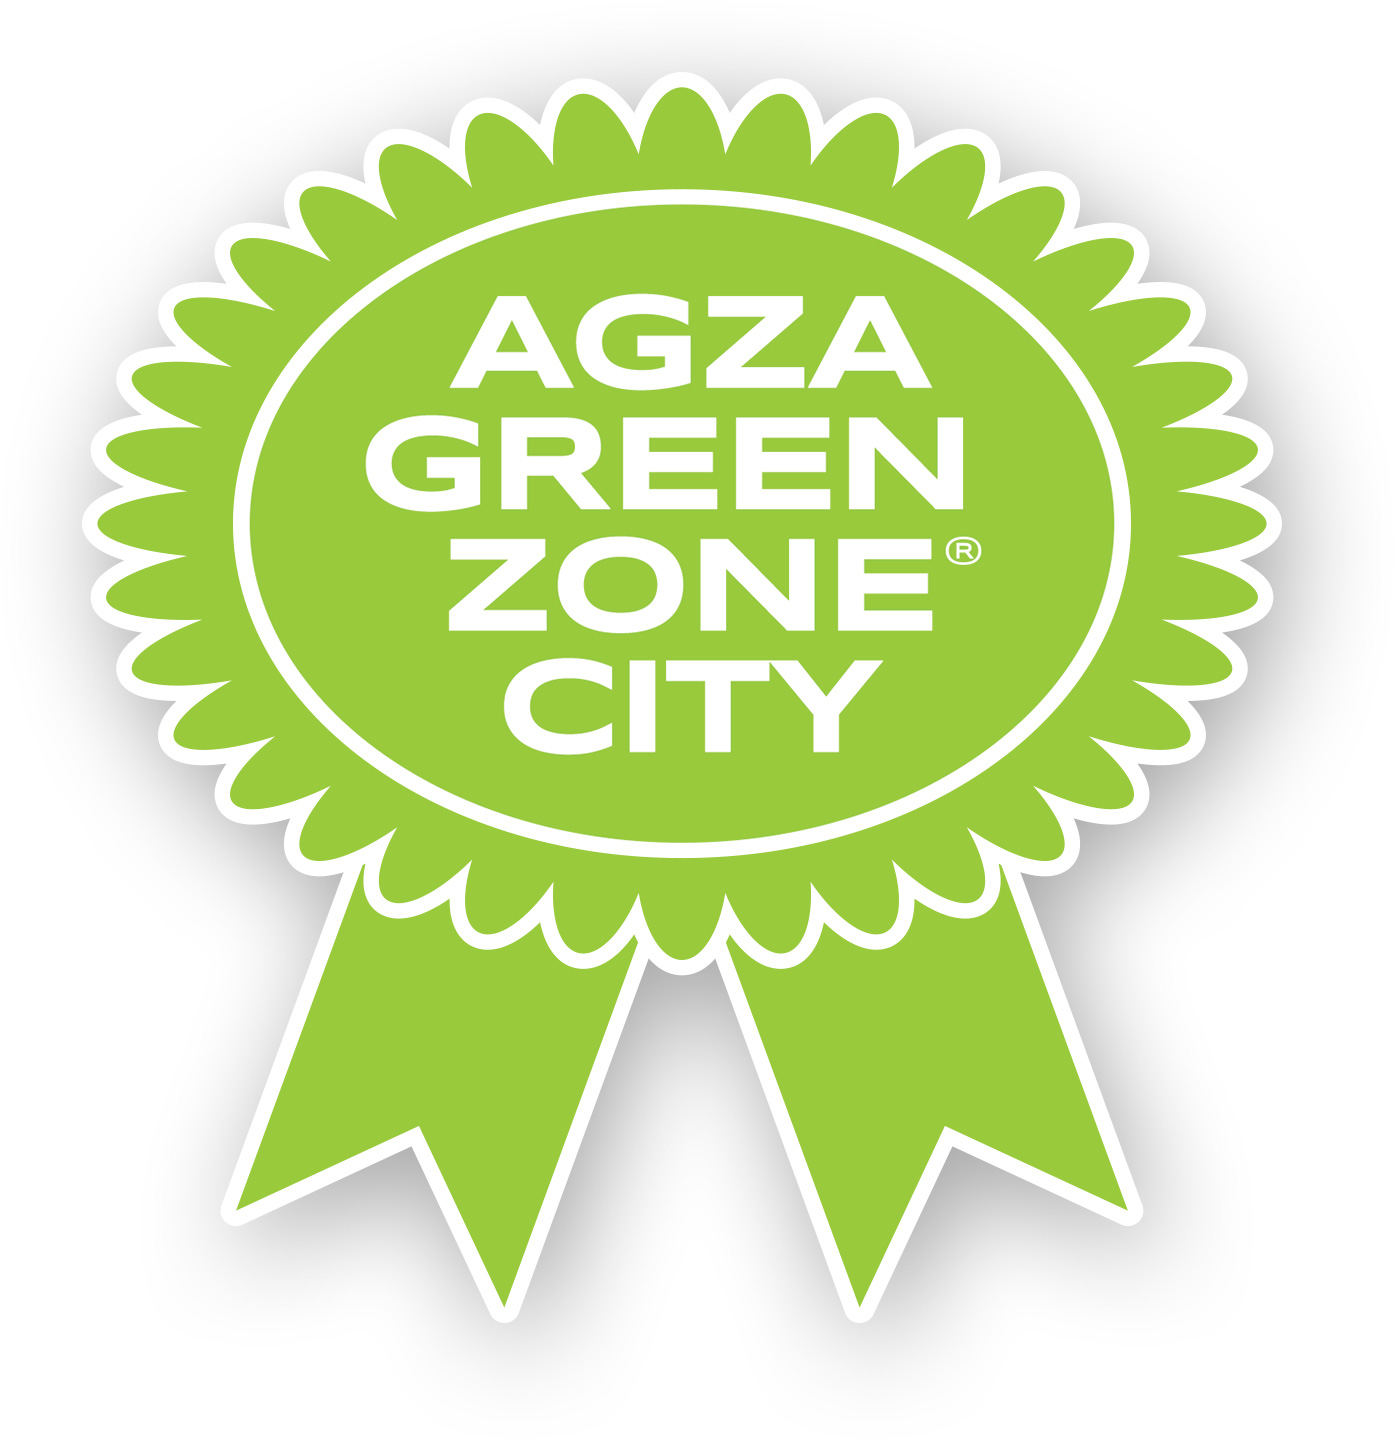 AGZA_GFX_Ribbon_Green_Zone_City_SHADOW_1200.jpg